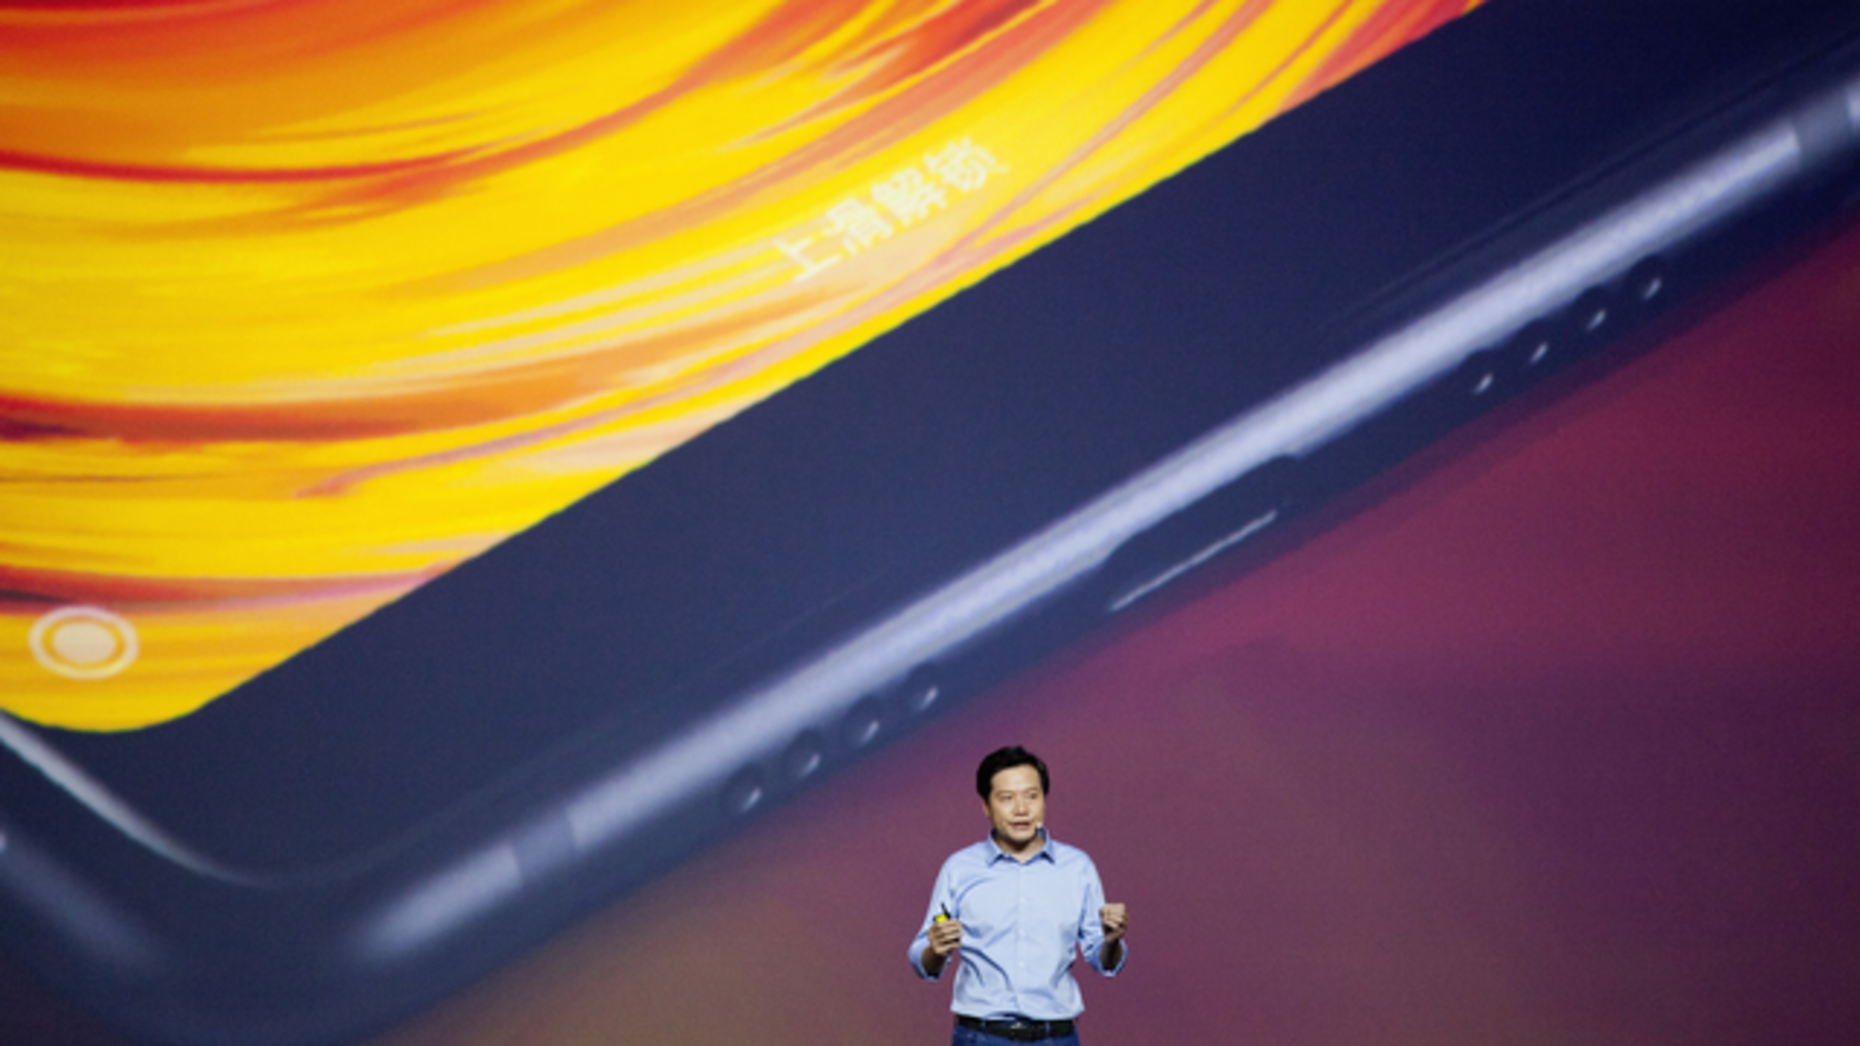 Xiaomi CEO Lei Jun unveiling a new smartphone in China in September. Photo by Bloomberg.